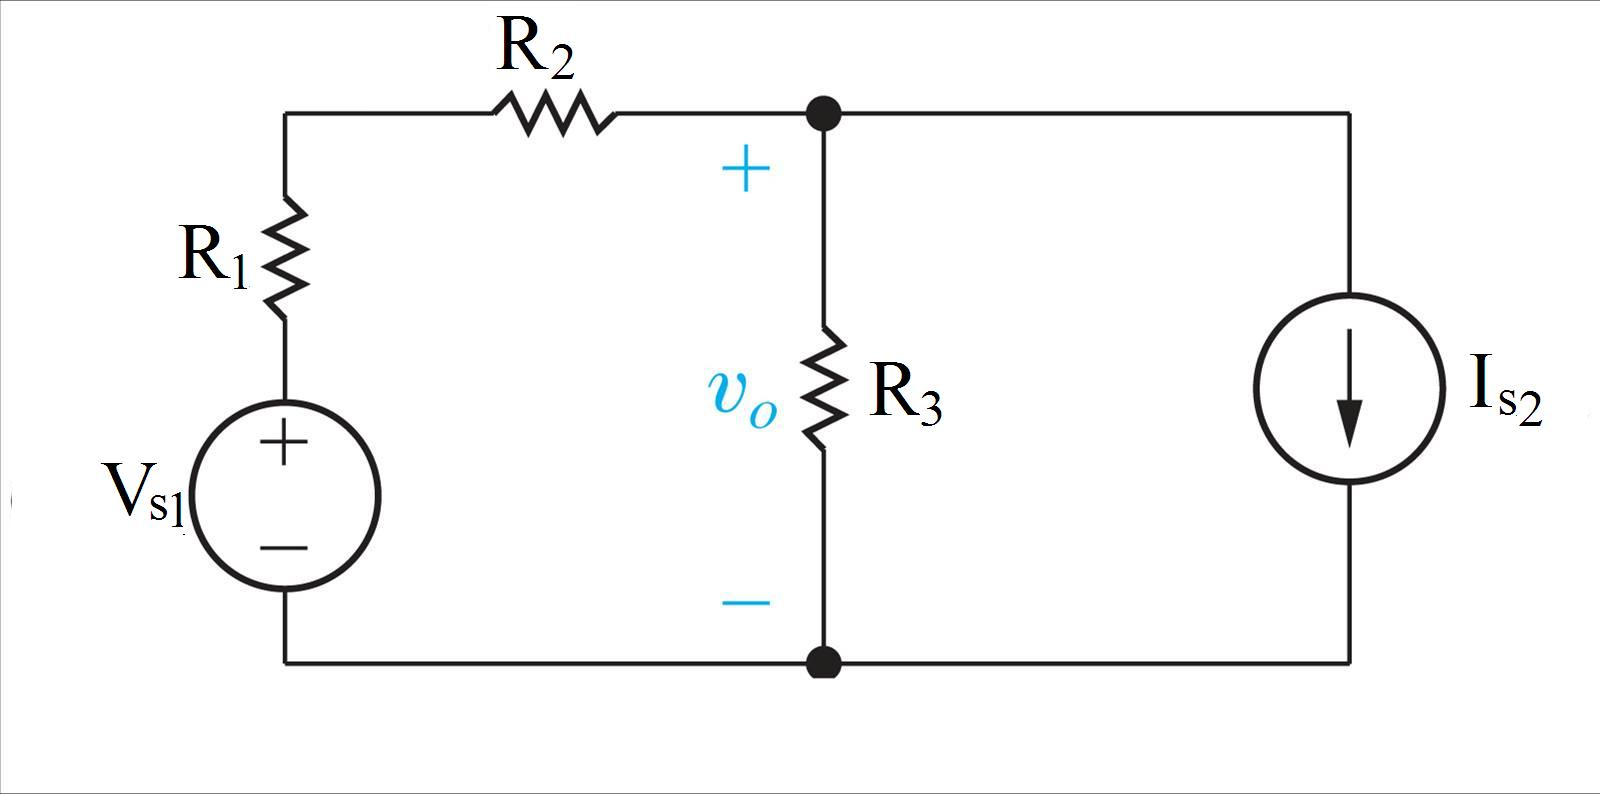 In the circuit, Vs1 is 55 V, Is2 is 3 A, R1 is 10